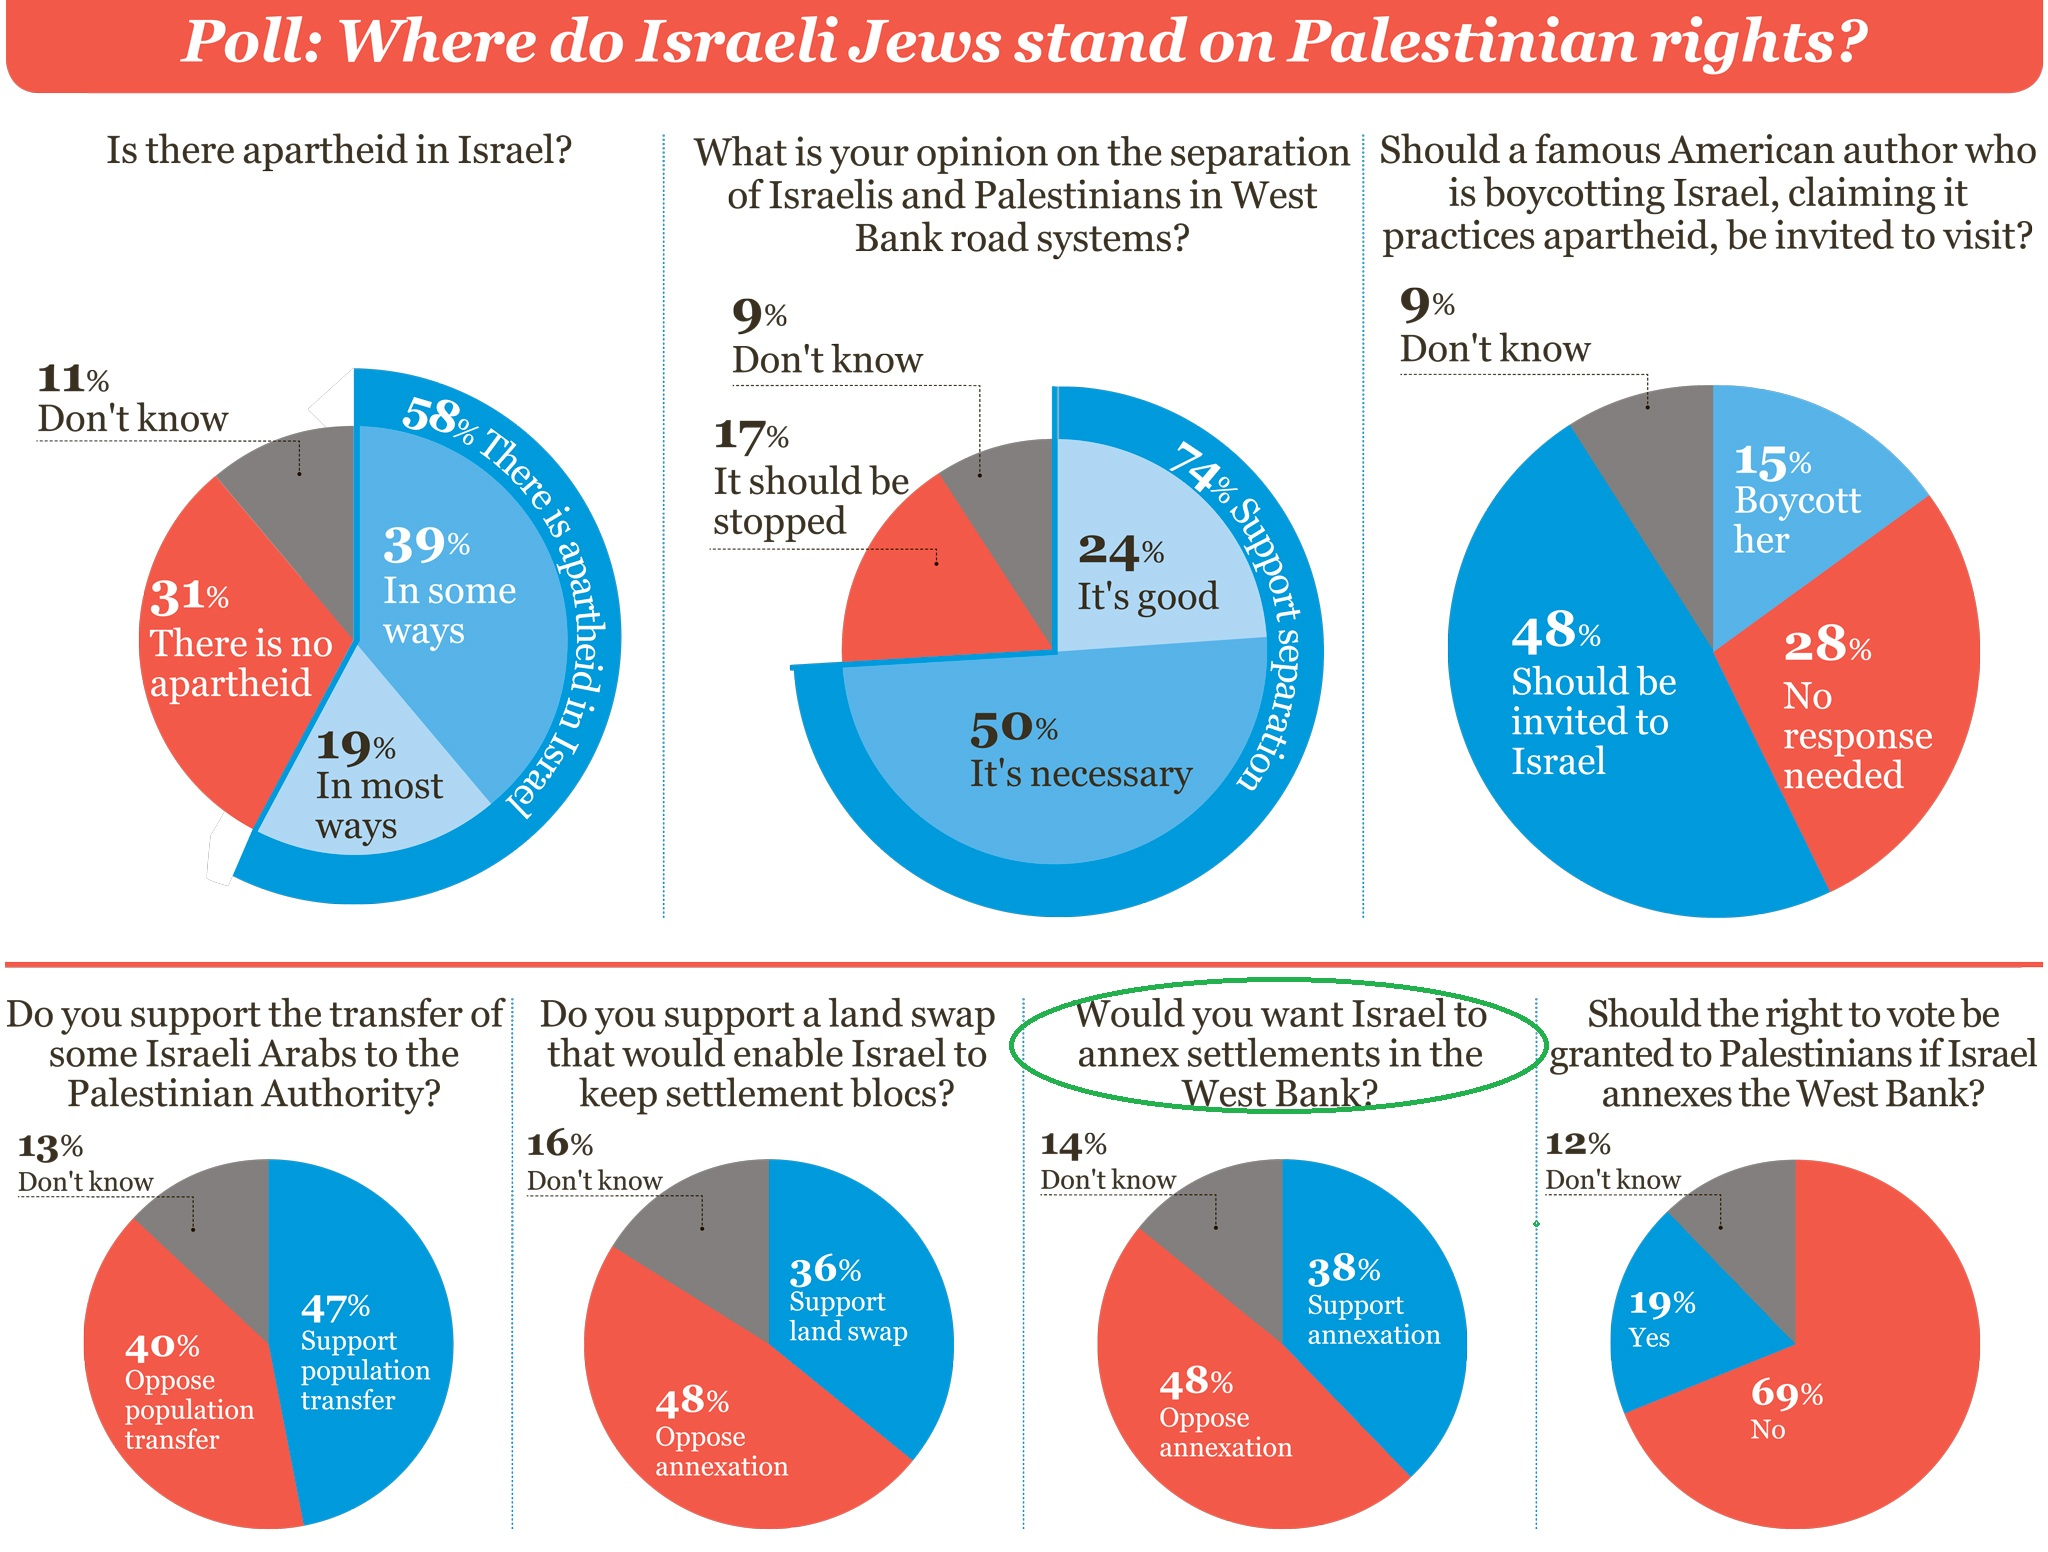 Harriet Sherwood cherry picks results of poll to smear Israel with 'apartheid' label